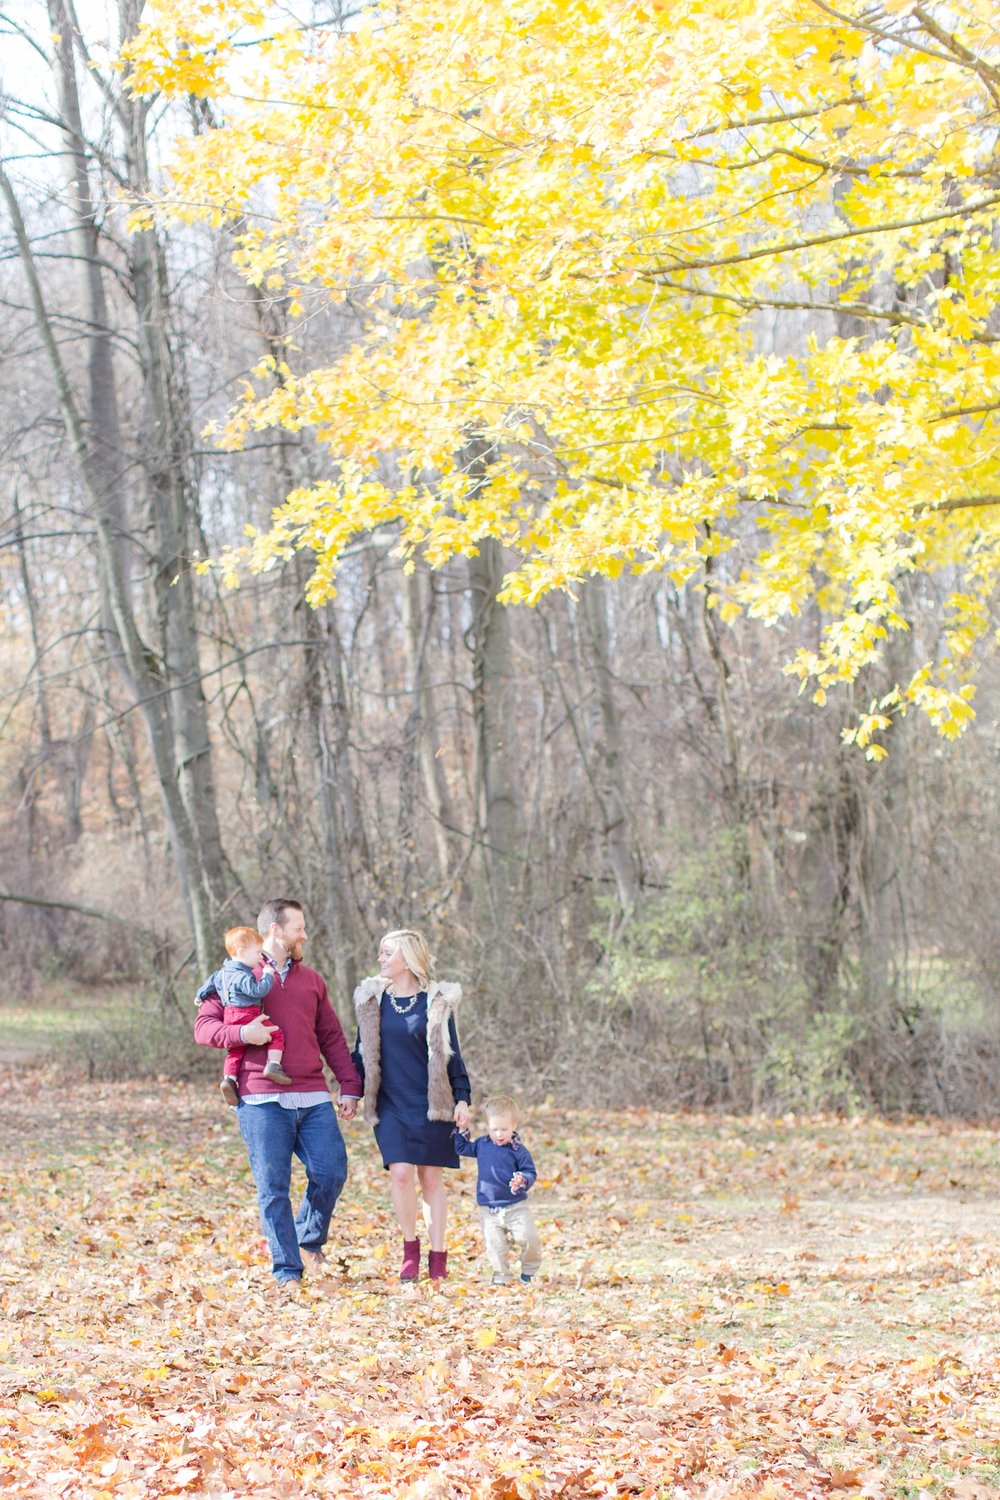 Andrews Family 2017-120_oregon-ridge-park-baltimore-maryland-family-photography-anna-grace-photography-photo.jpg